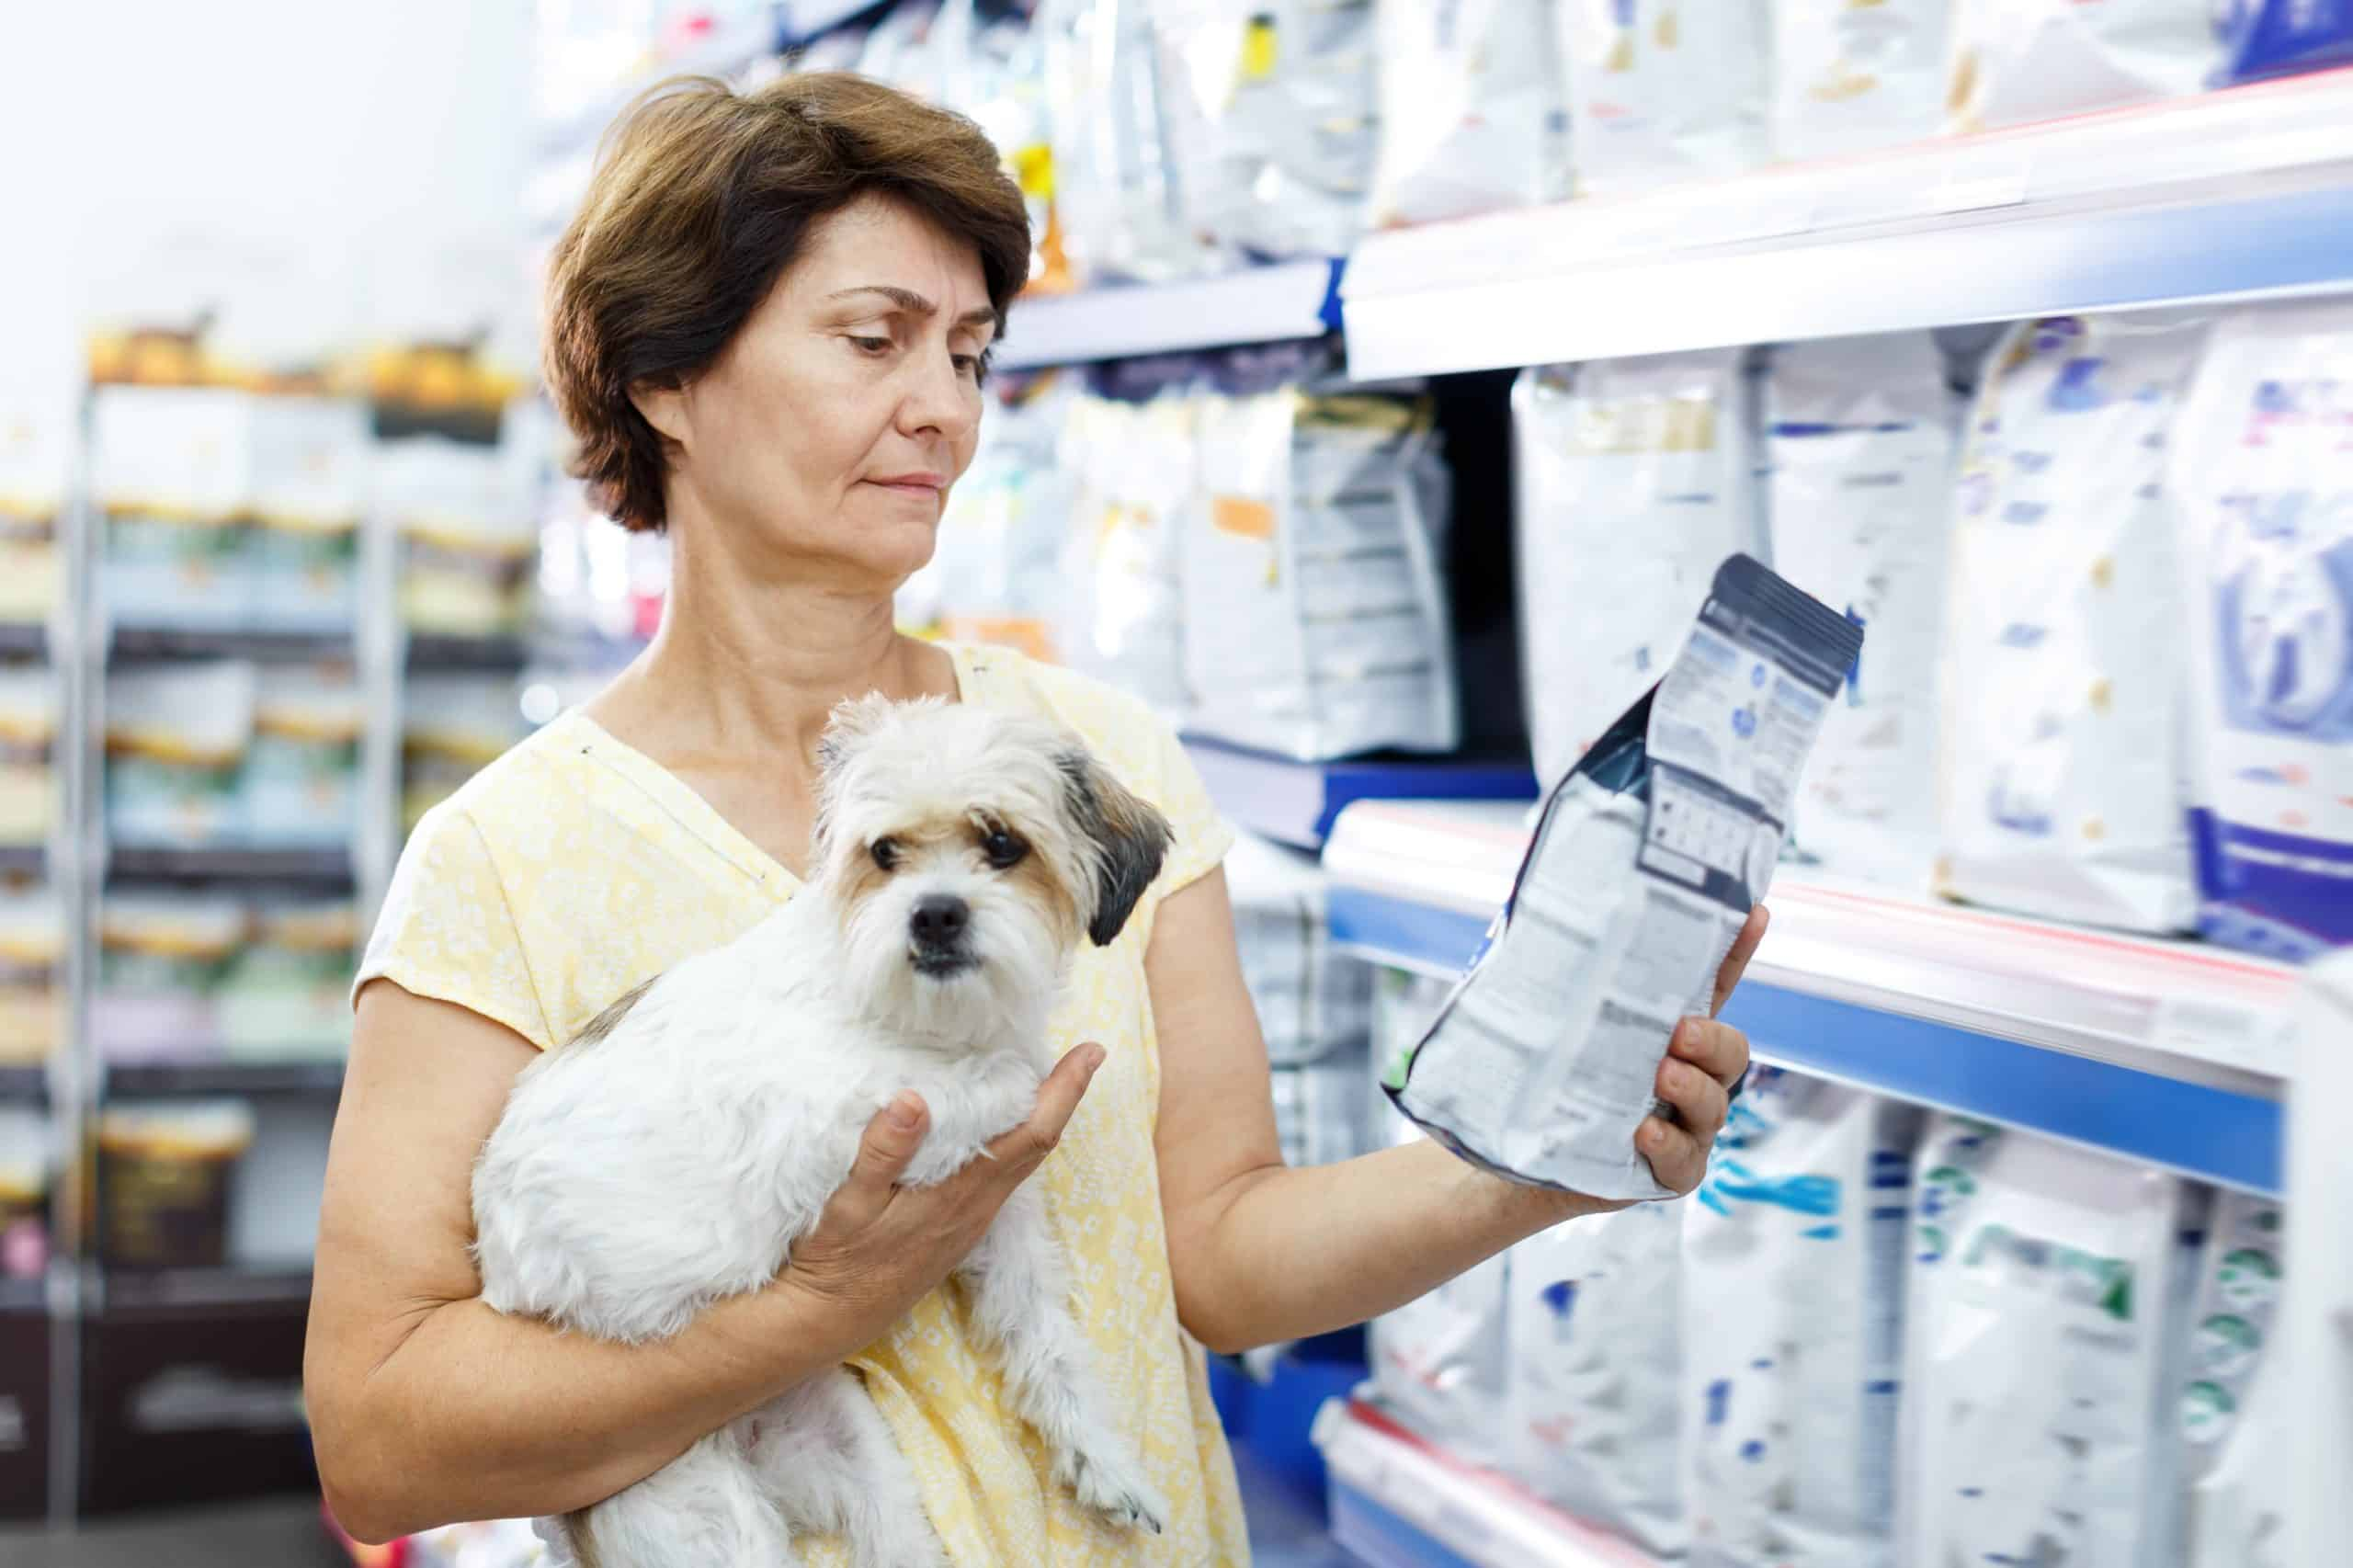 Woman reads information on dog food bag. How to choose dog food: Start by considering your dog's breed, size, and activity level. Then read the ingredients and research the company.